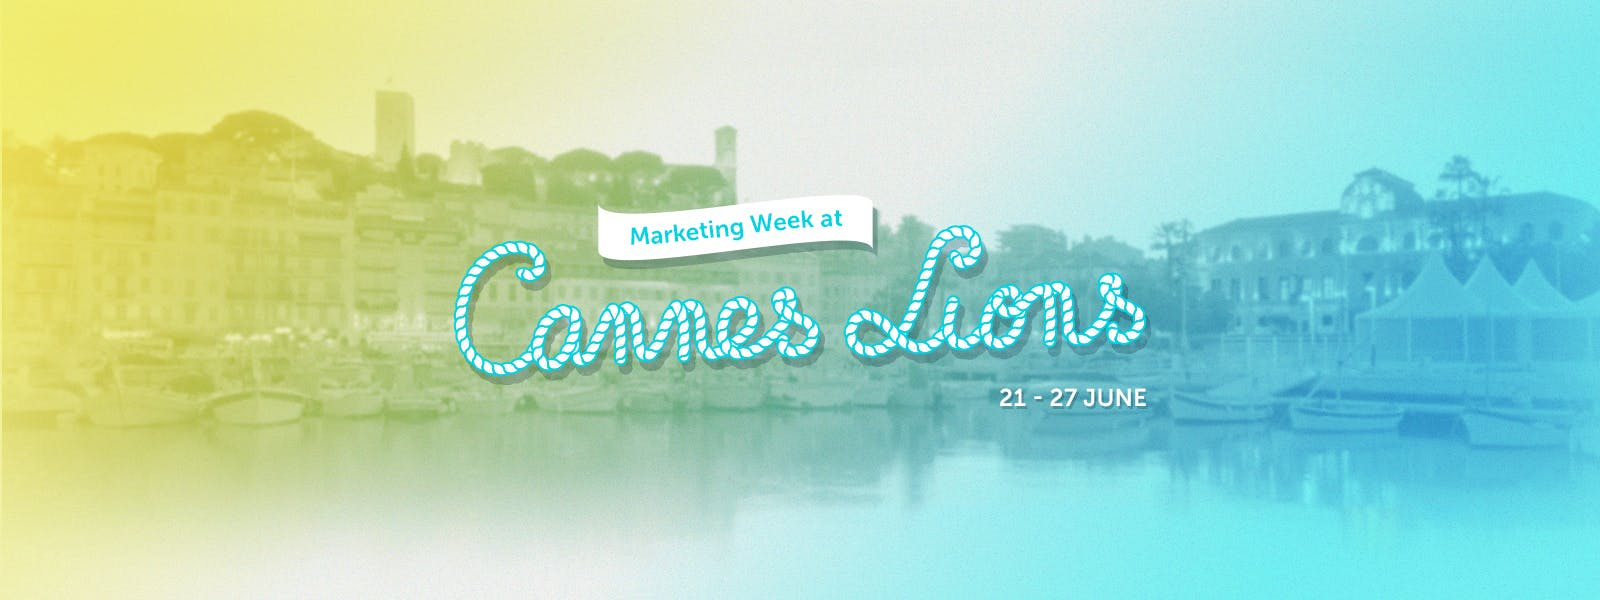 Cannes Lions homepage